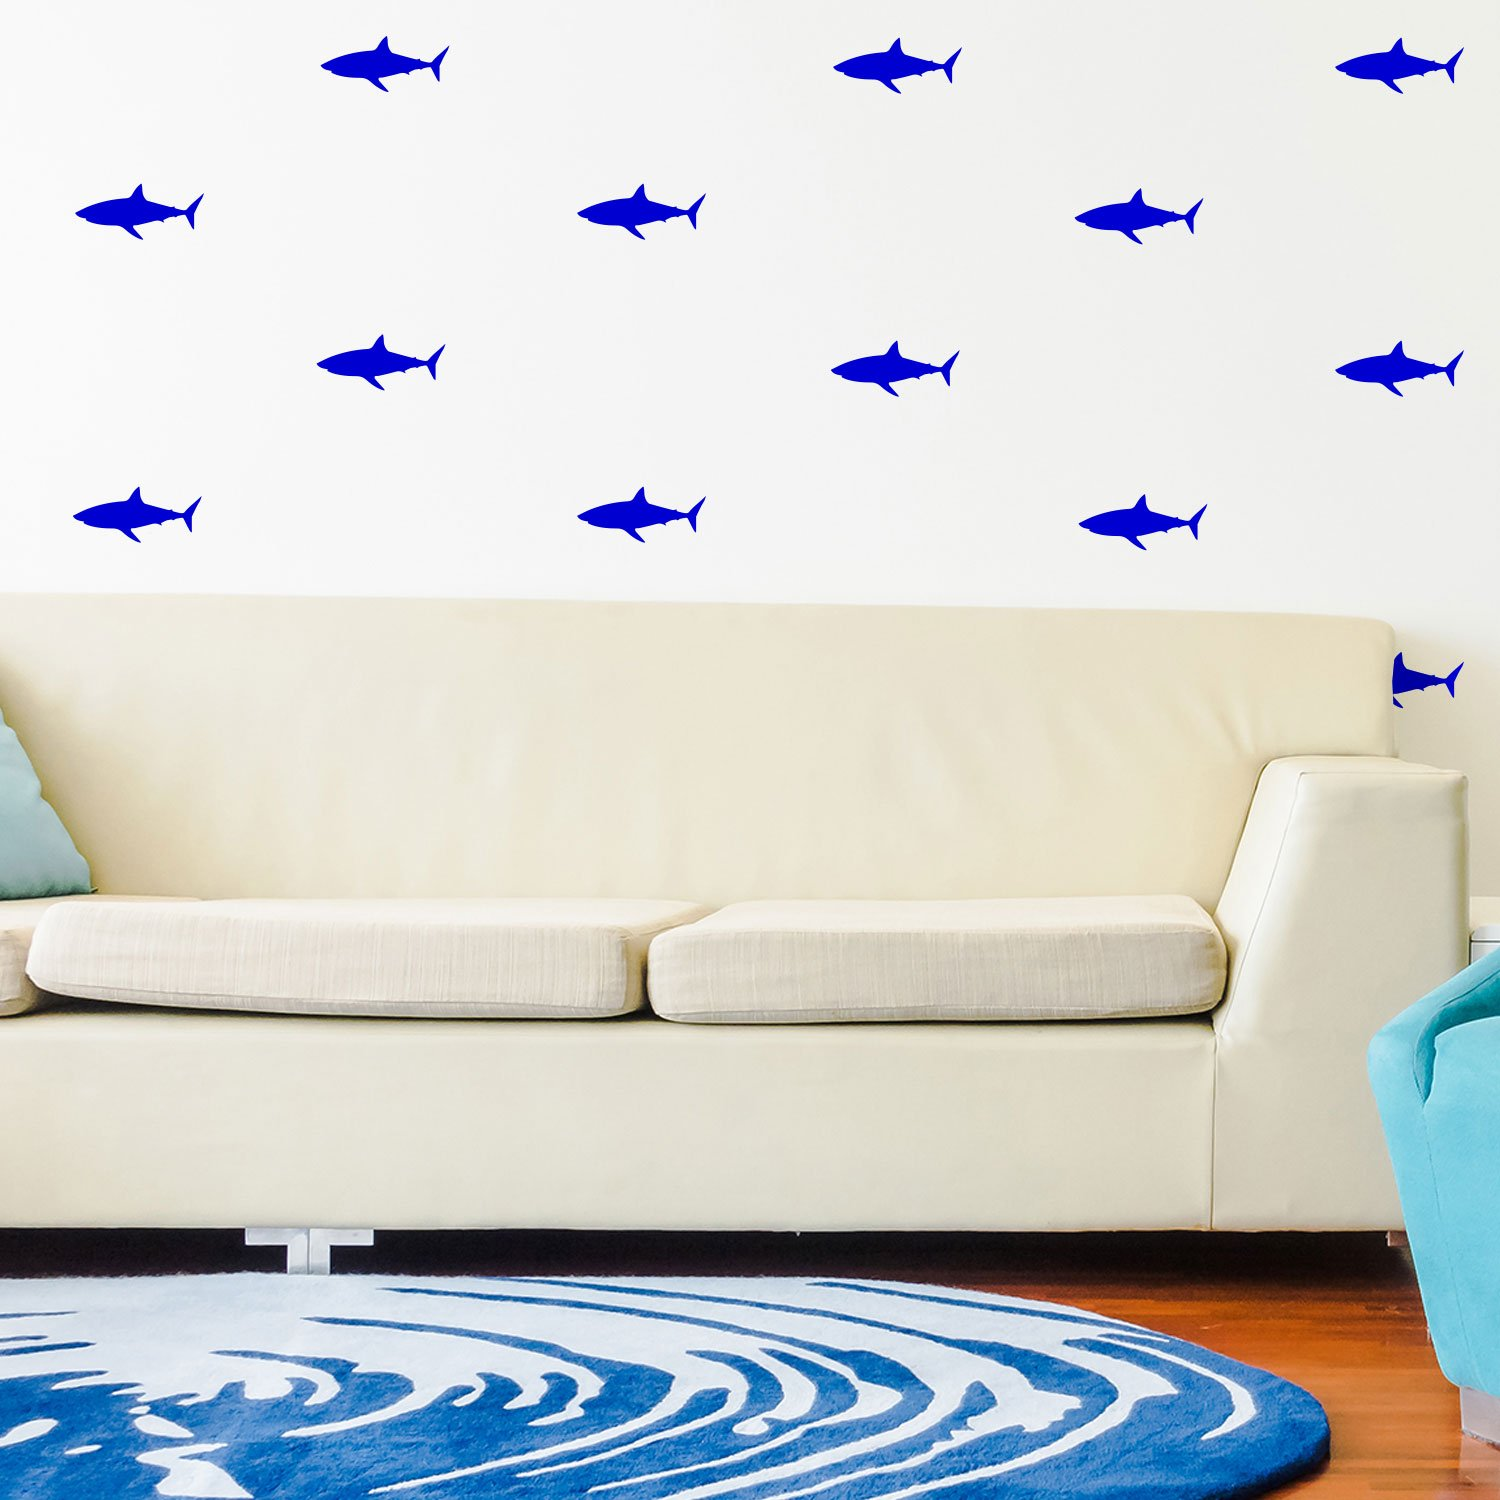 "Set of 21 Vinyl Wall Art Decals - Shark Patterns - 3"" x 7"" Each - Cool Adhesive Sticker Shapes for Boys Toddlers Teens Bedroom Playroom Living Room Home Apartment Decorations (3"" x 7"", Blue)"